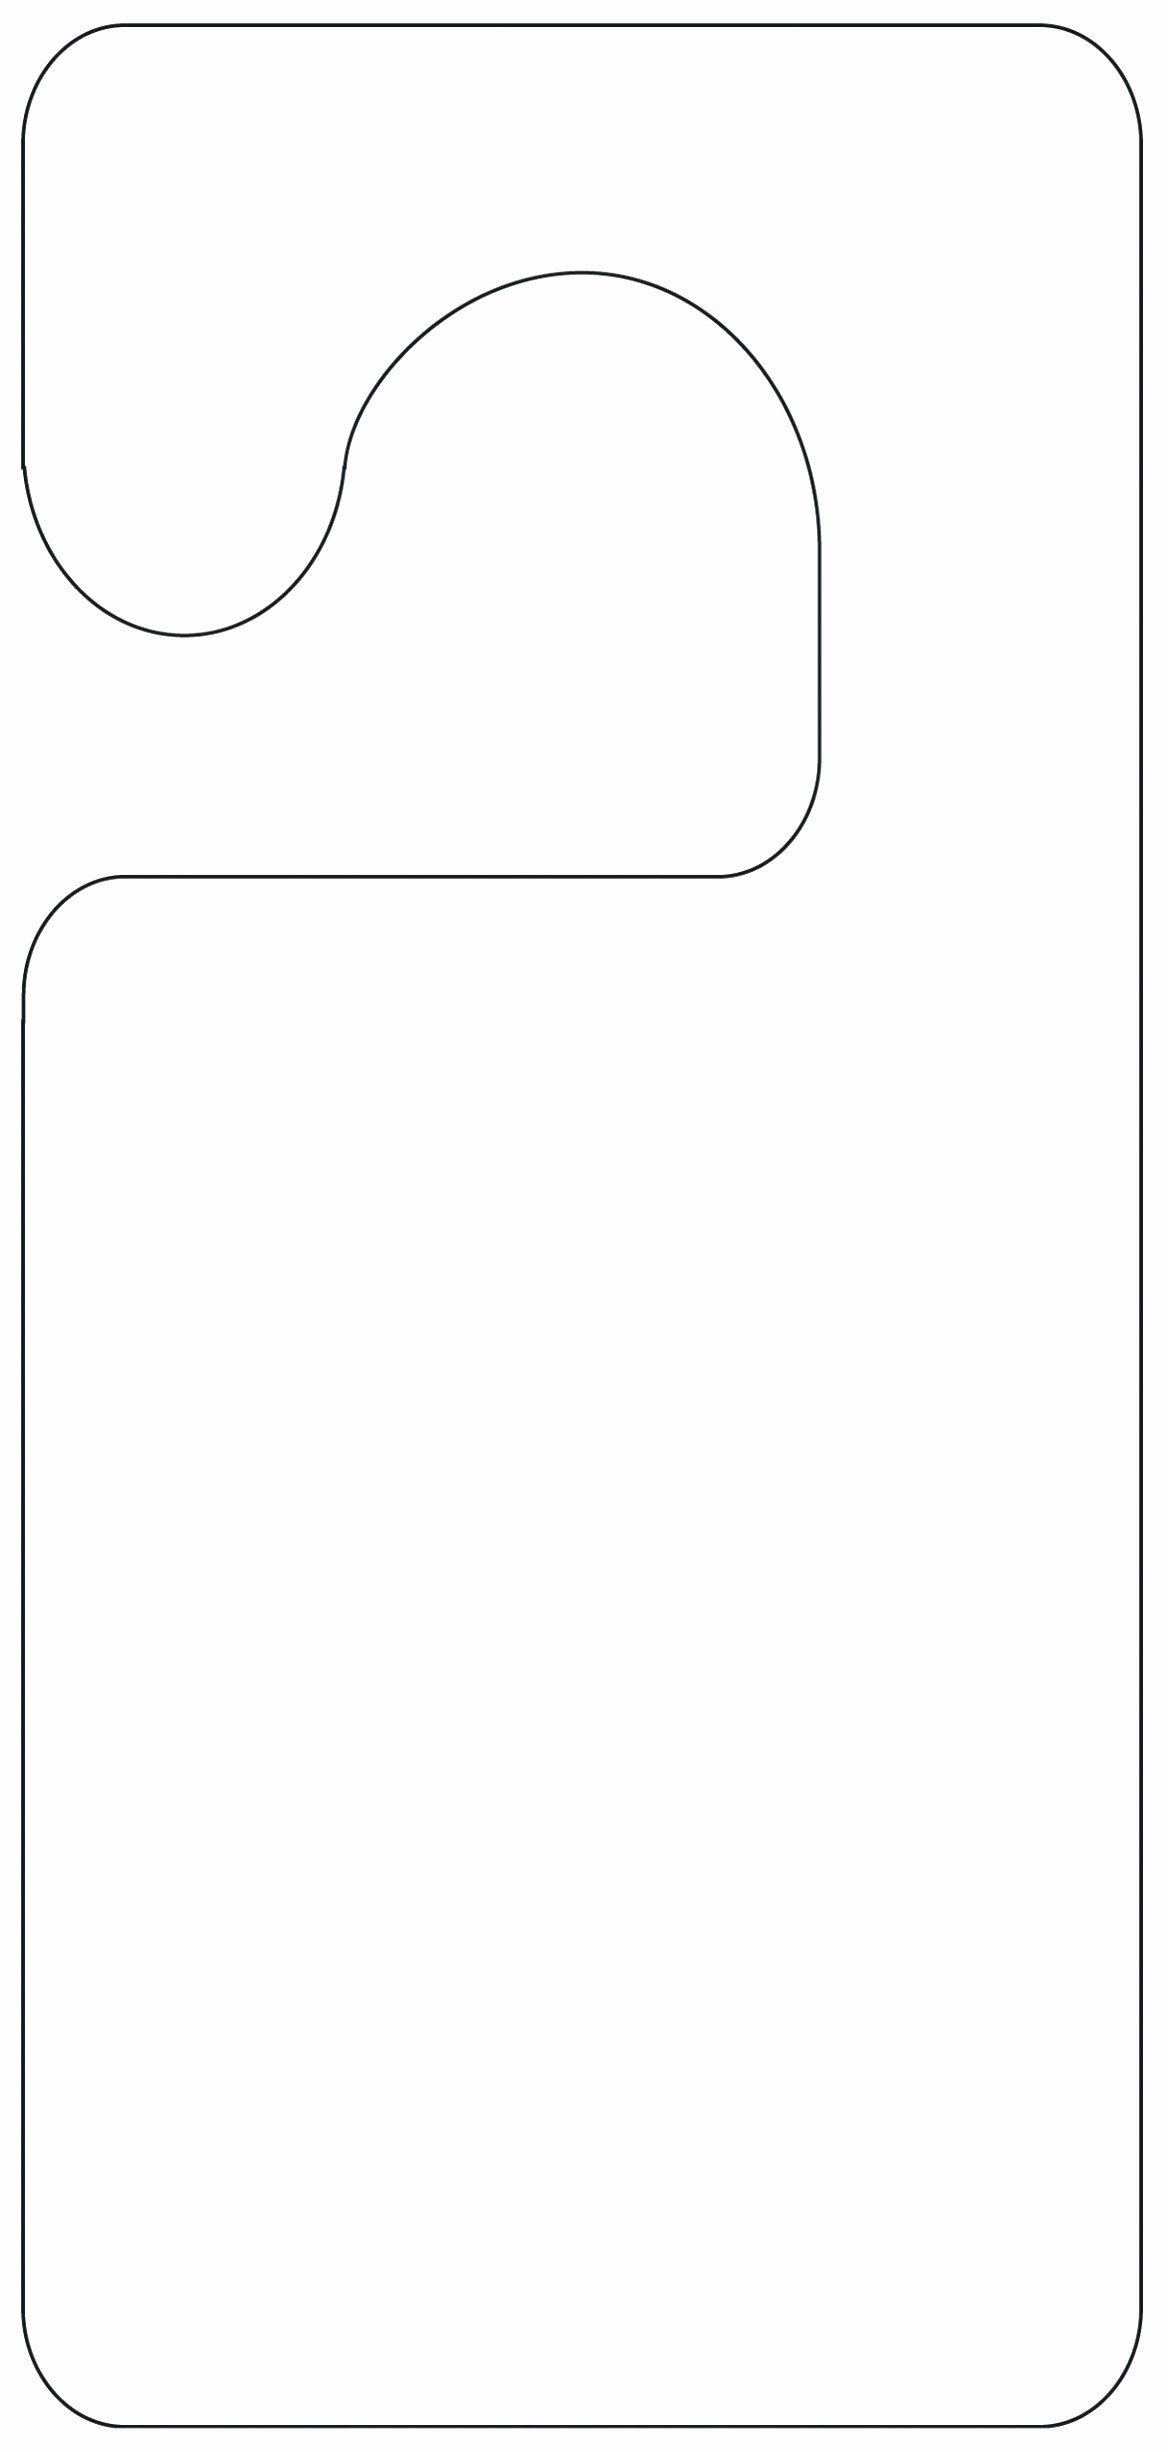 Door Hanger Template Free Unique 5 Blank Door Hanger Template for Word Uawrc